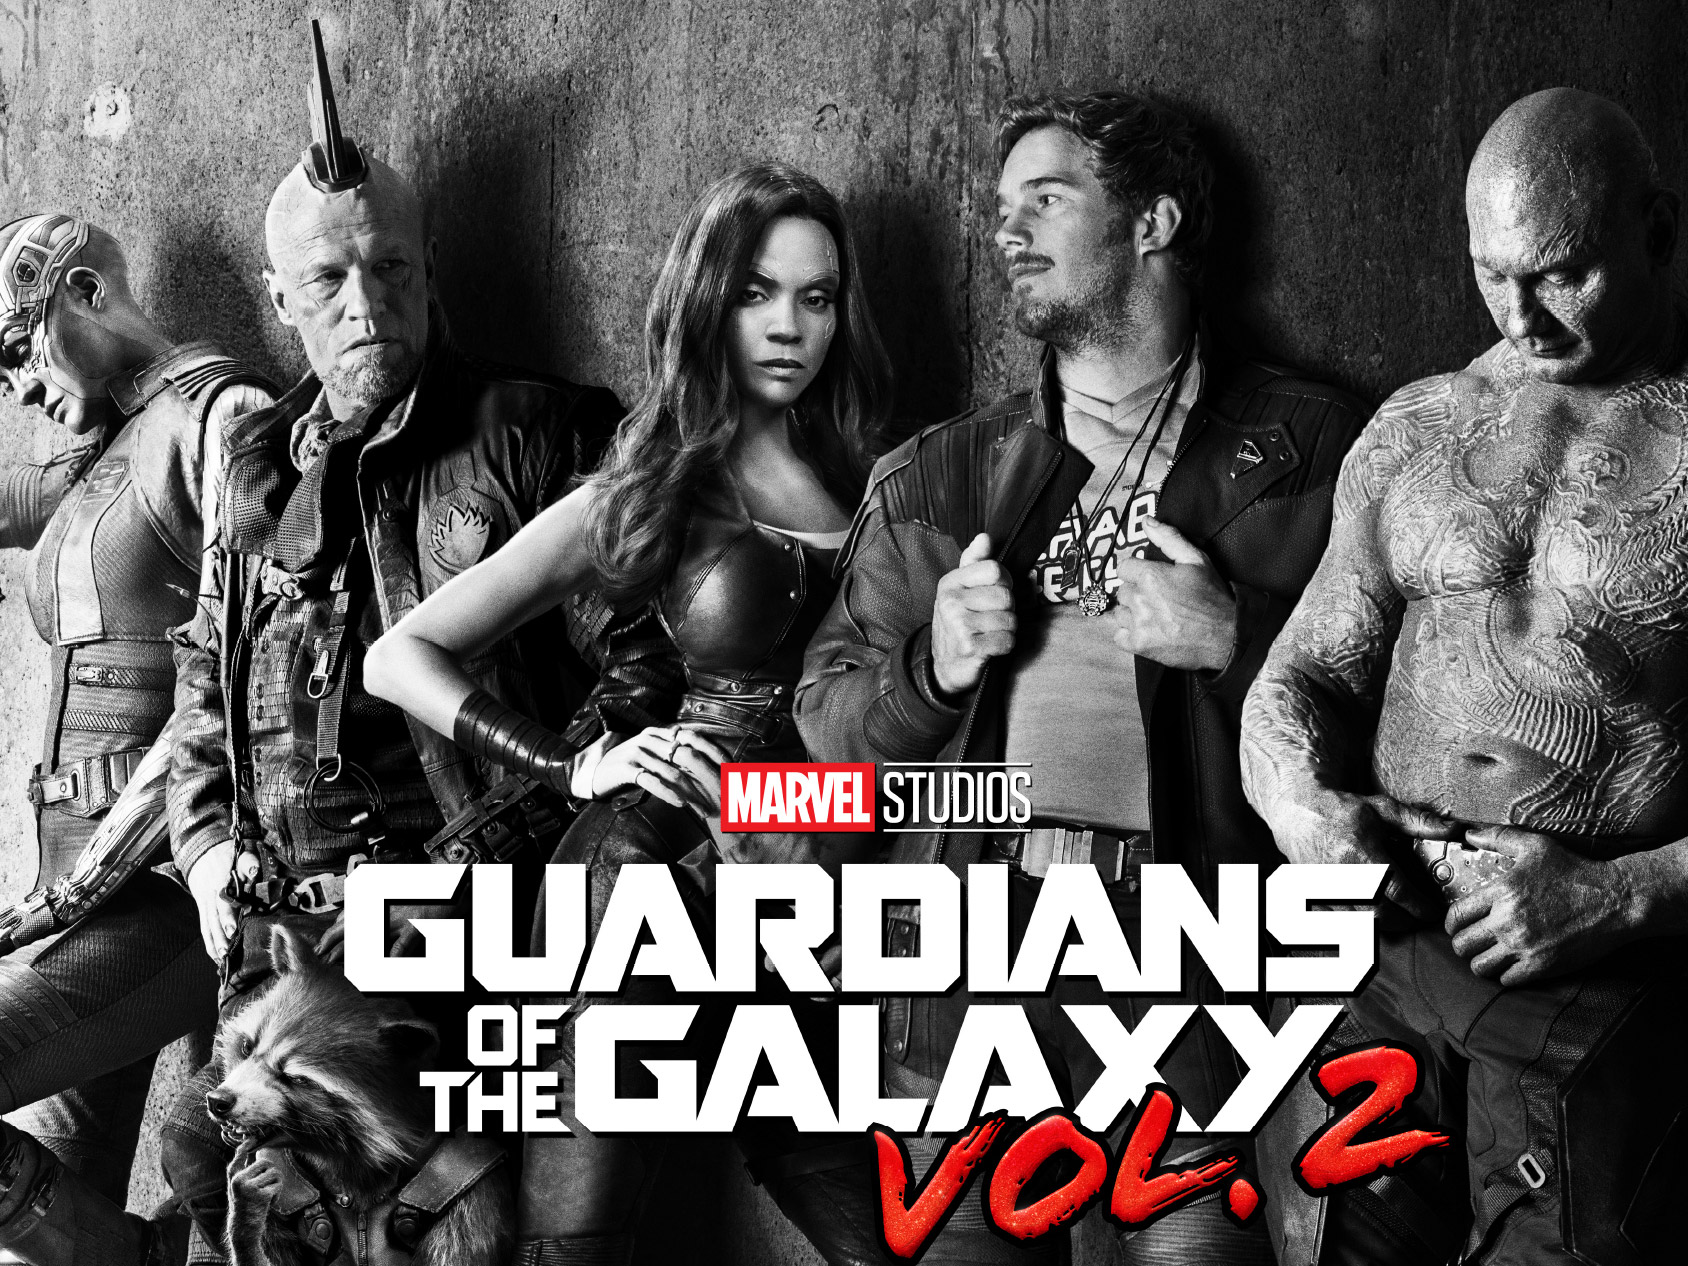 Guardians-of-the-Galaxy-Vol-s-Cameos-Are-Out-of-This-World-wallpaper-wp3606459